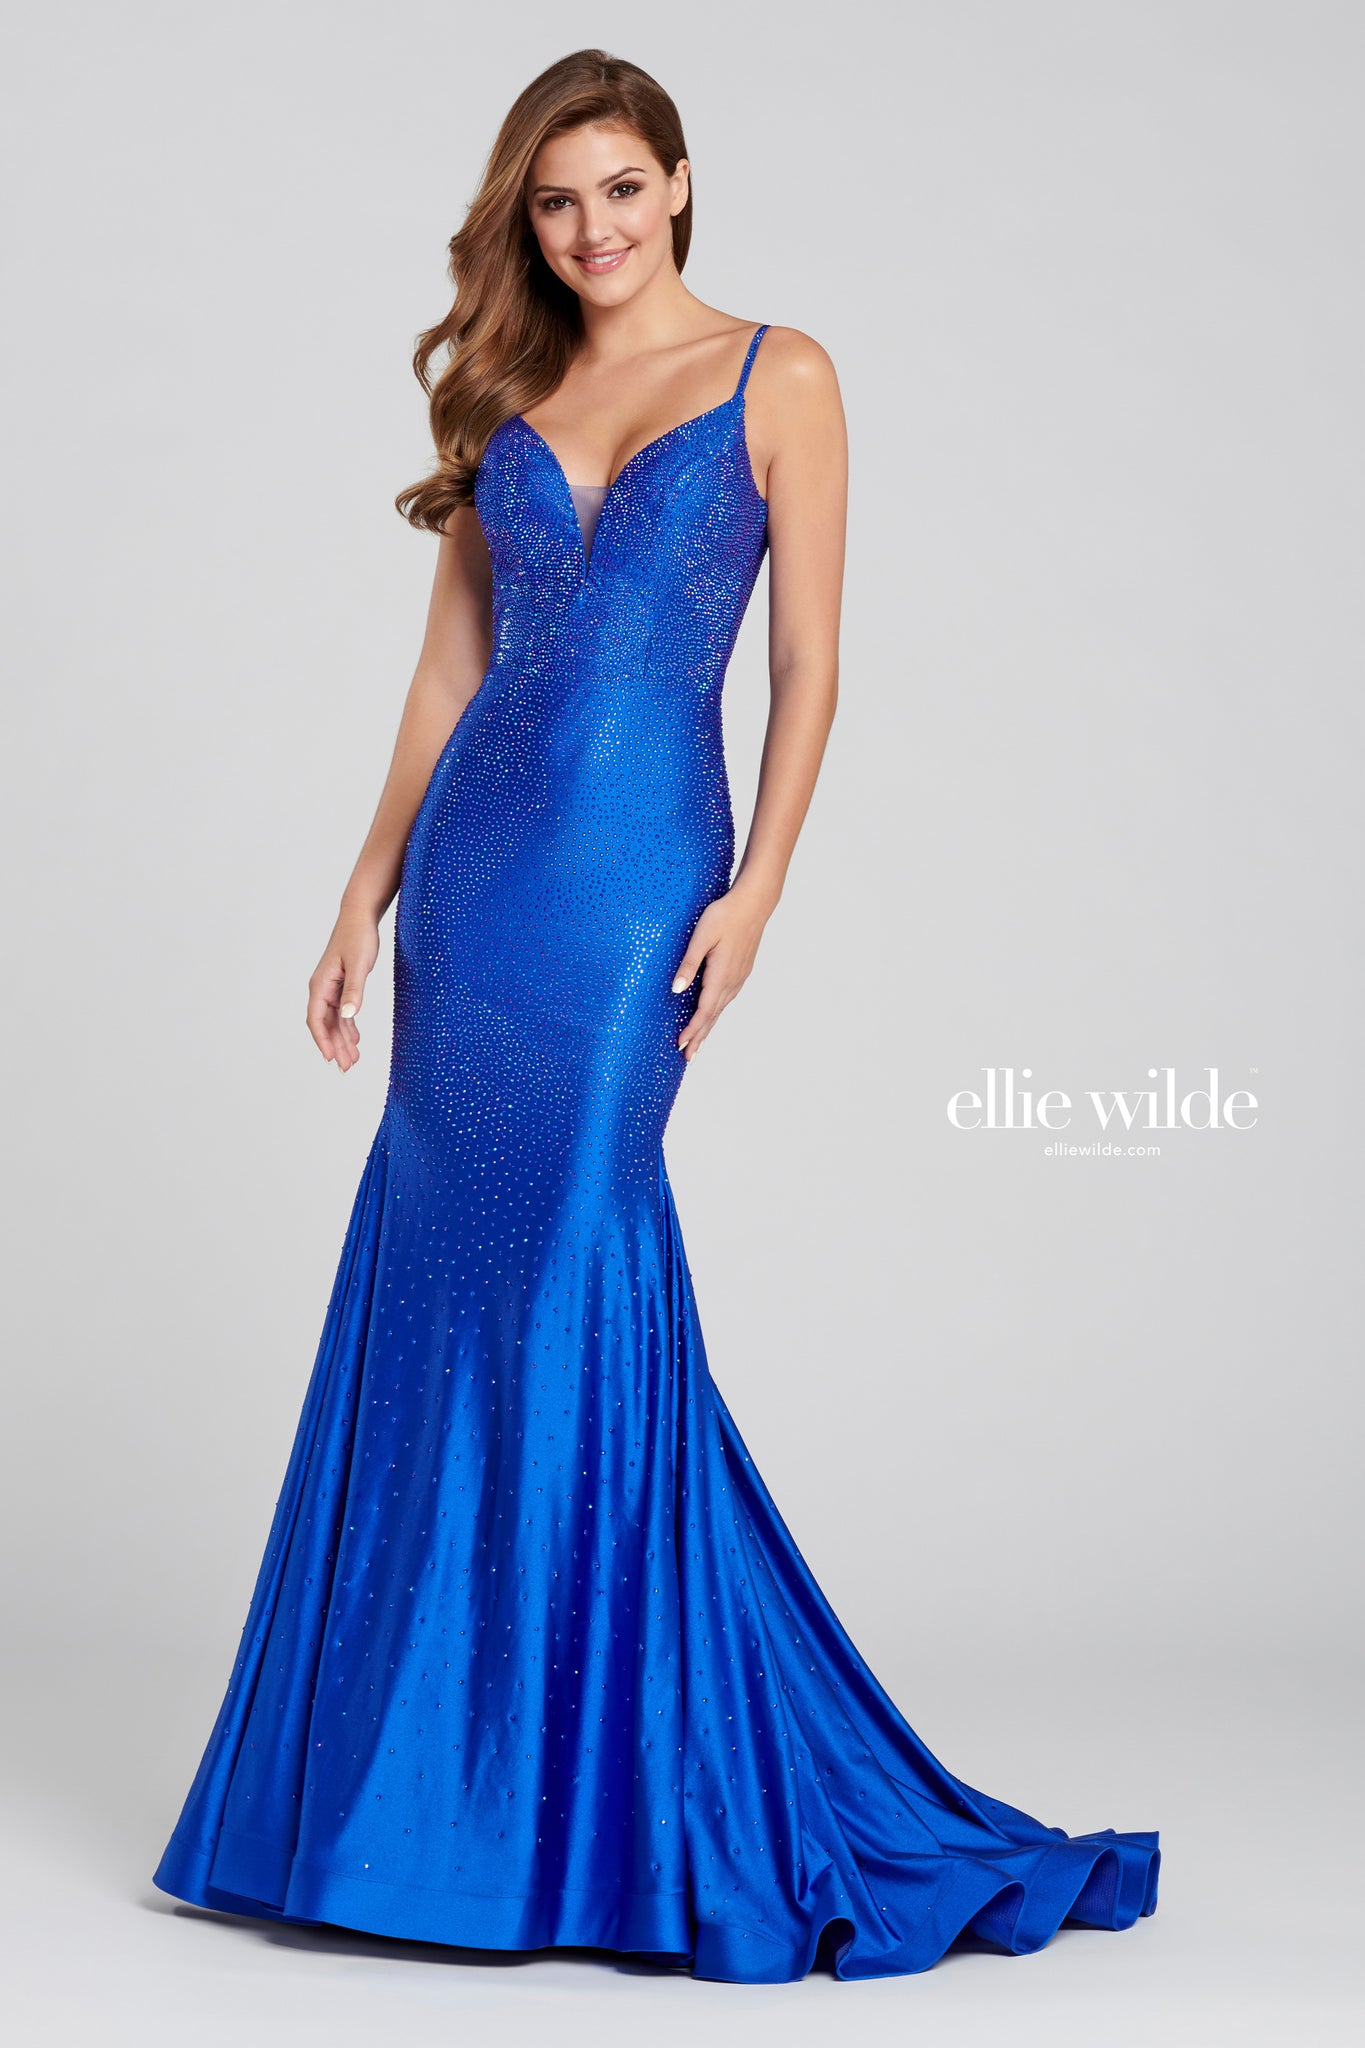 Ellie Wilde Embellished Royal Blue Evening Dress